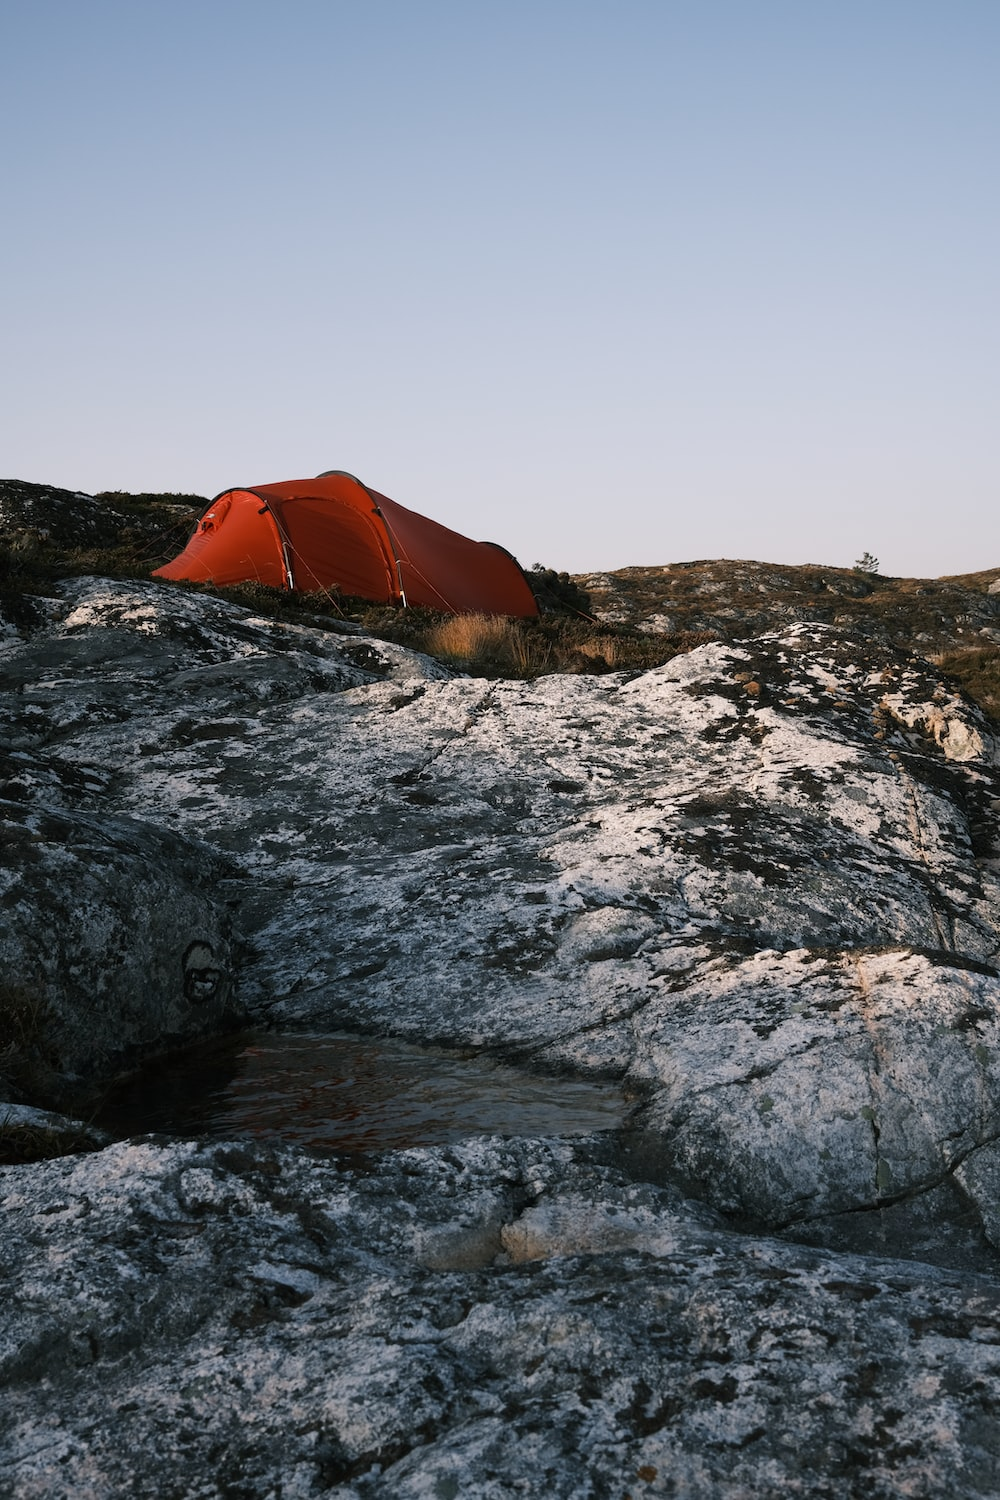 orange tent on rocky shore during daytime